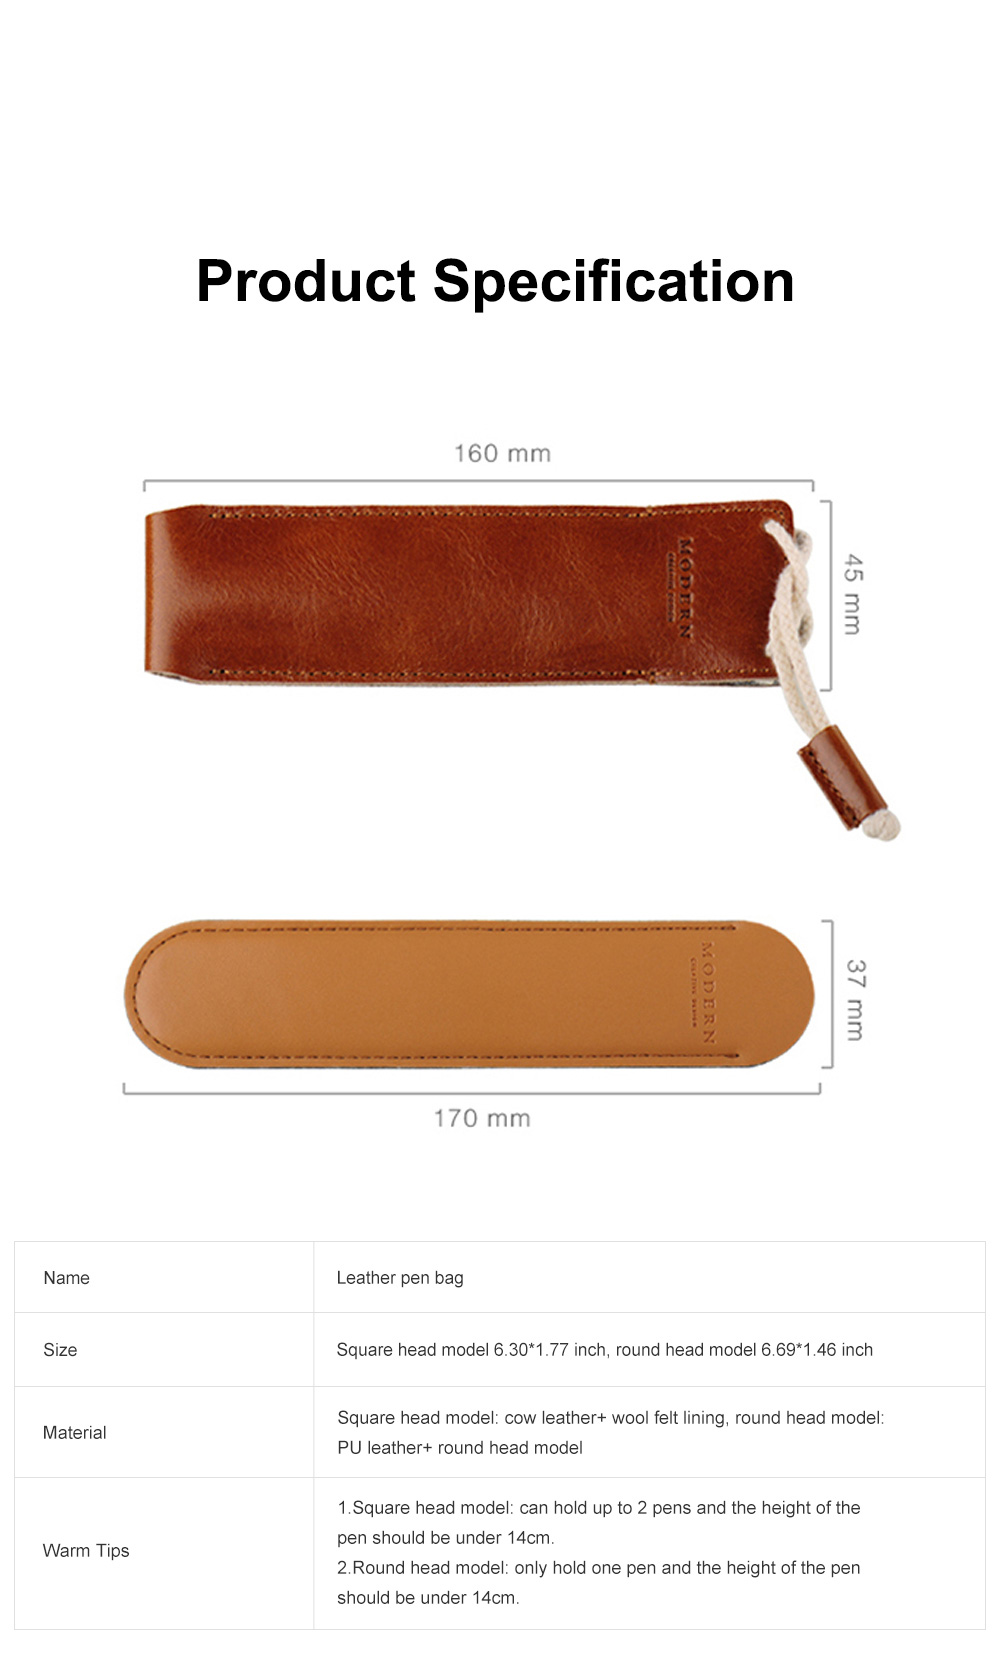 Minimalist Vintage Business Tough Soft Leather Pen Bag Pencil Case with Delicate Stitching Smooth Wool Felt Lining 6